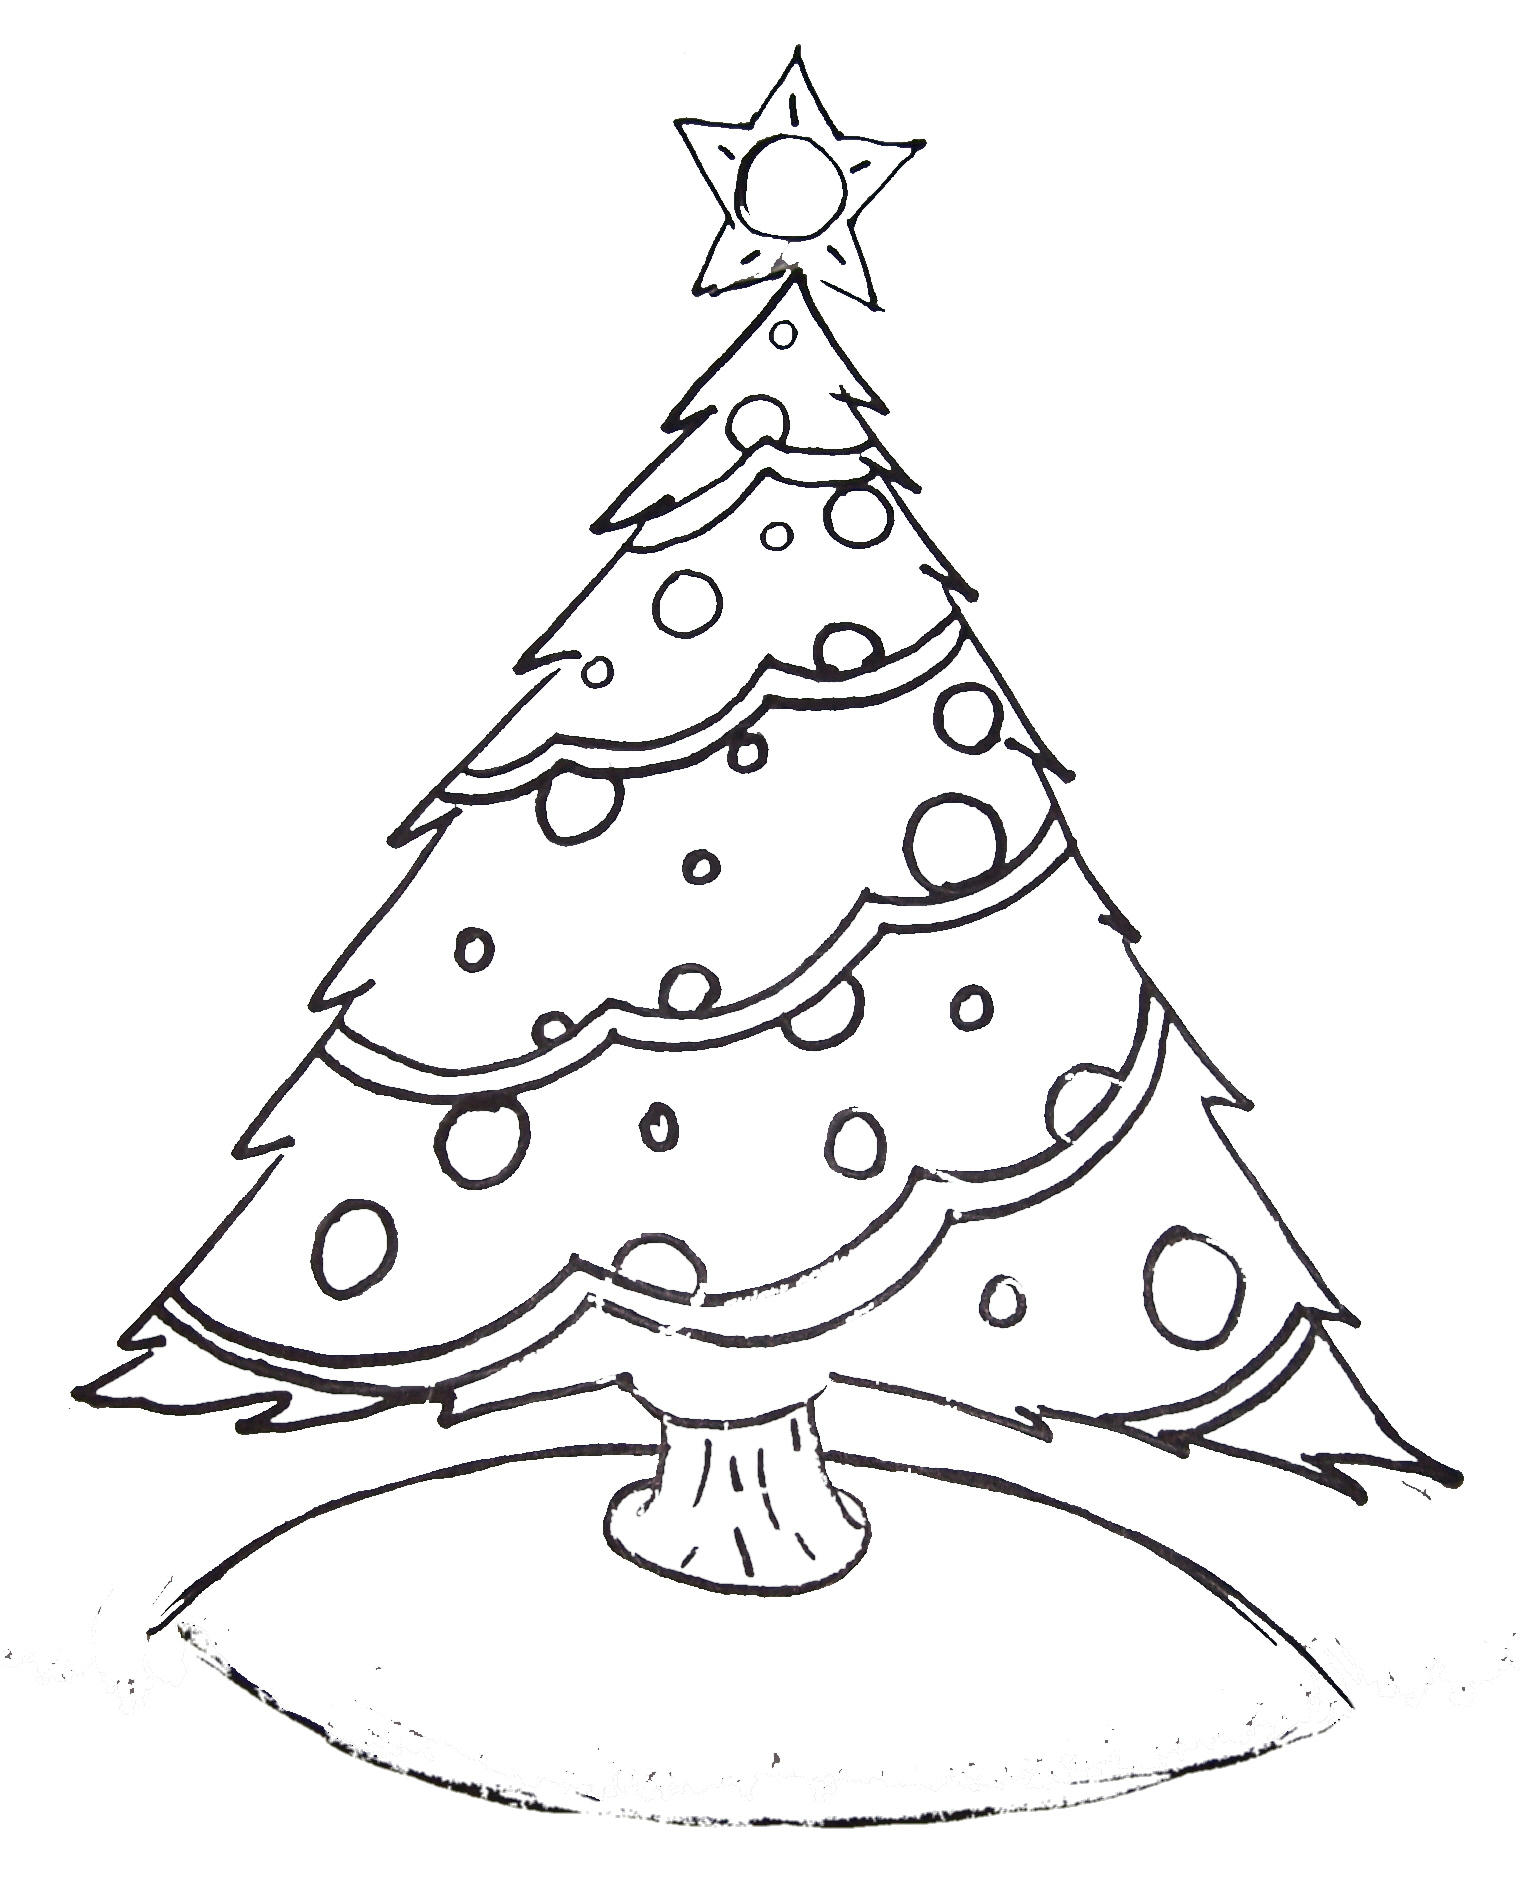 Free Printable Christmas Tree and Santa Coloring Pages - Kids ...